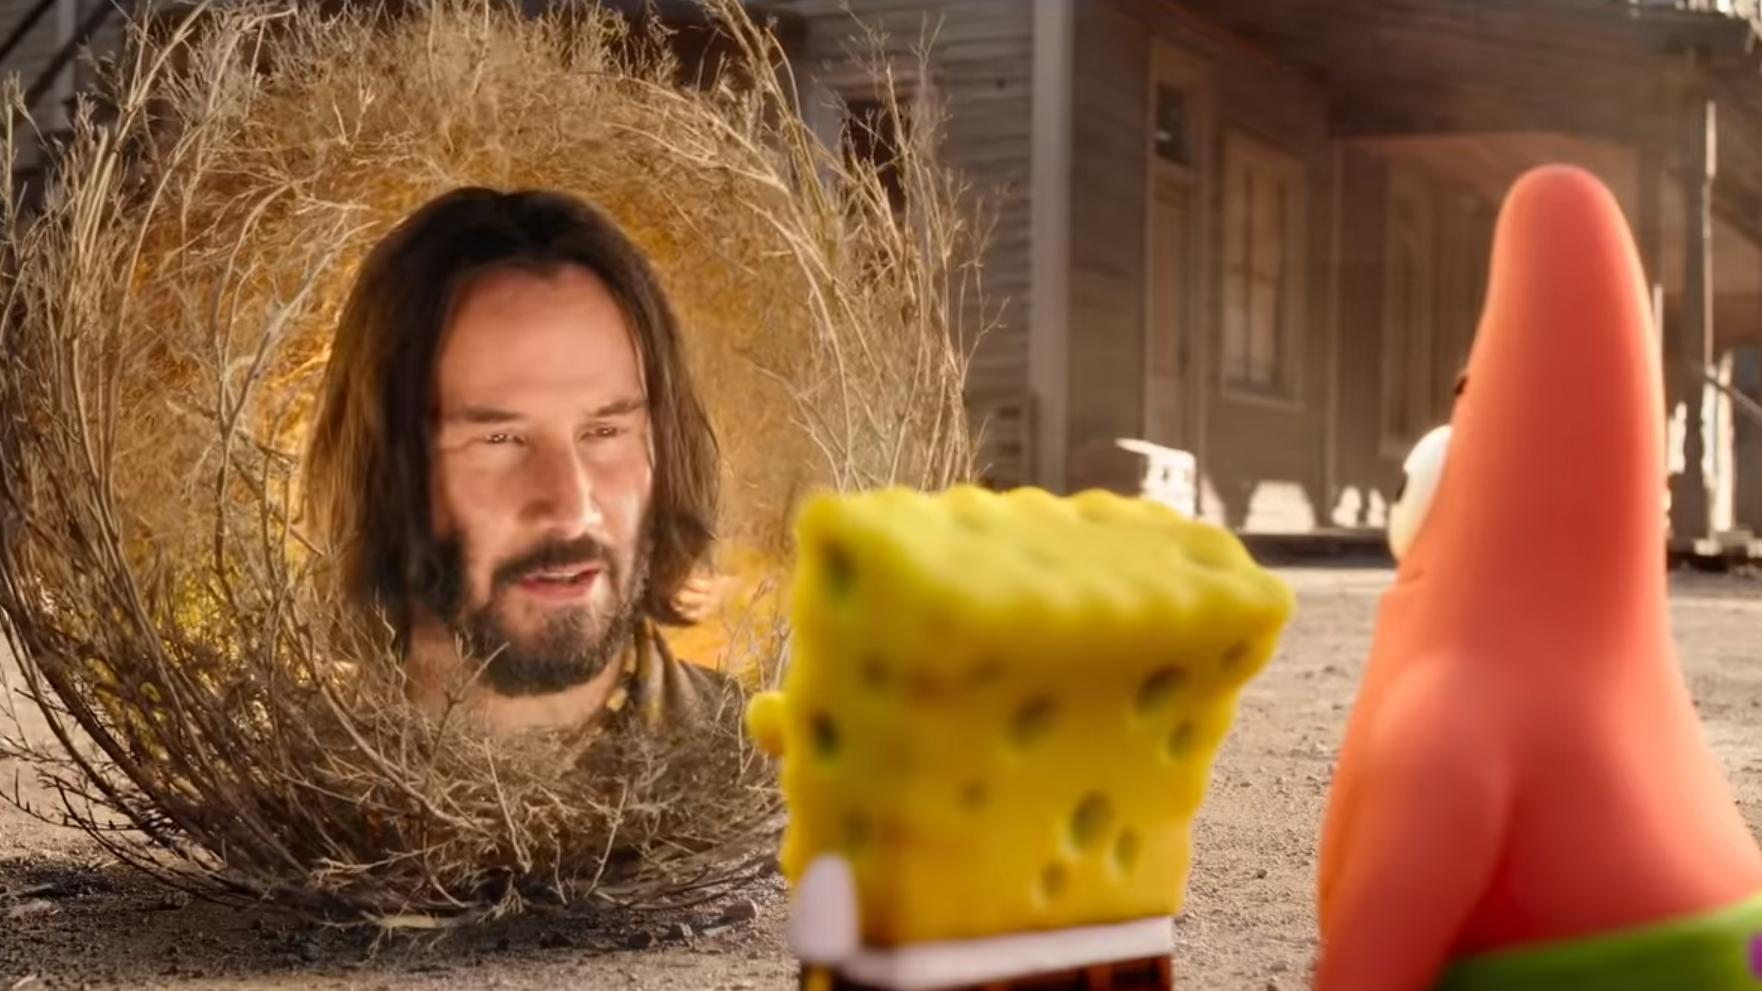 Keanu Reeves plays a ball of sage in the new trailer for 'The SpongeBob Movie: Sponge on the Run'. (Credit: Paramount)